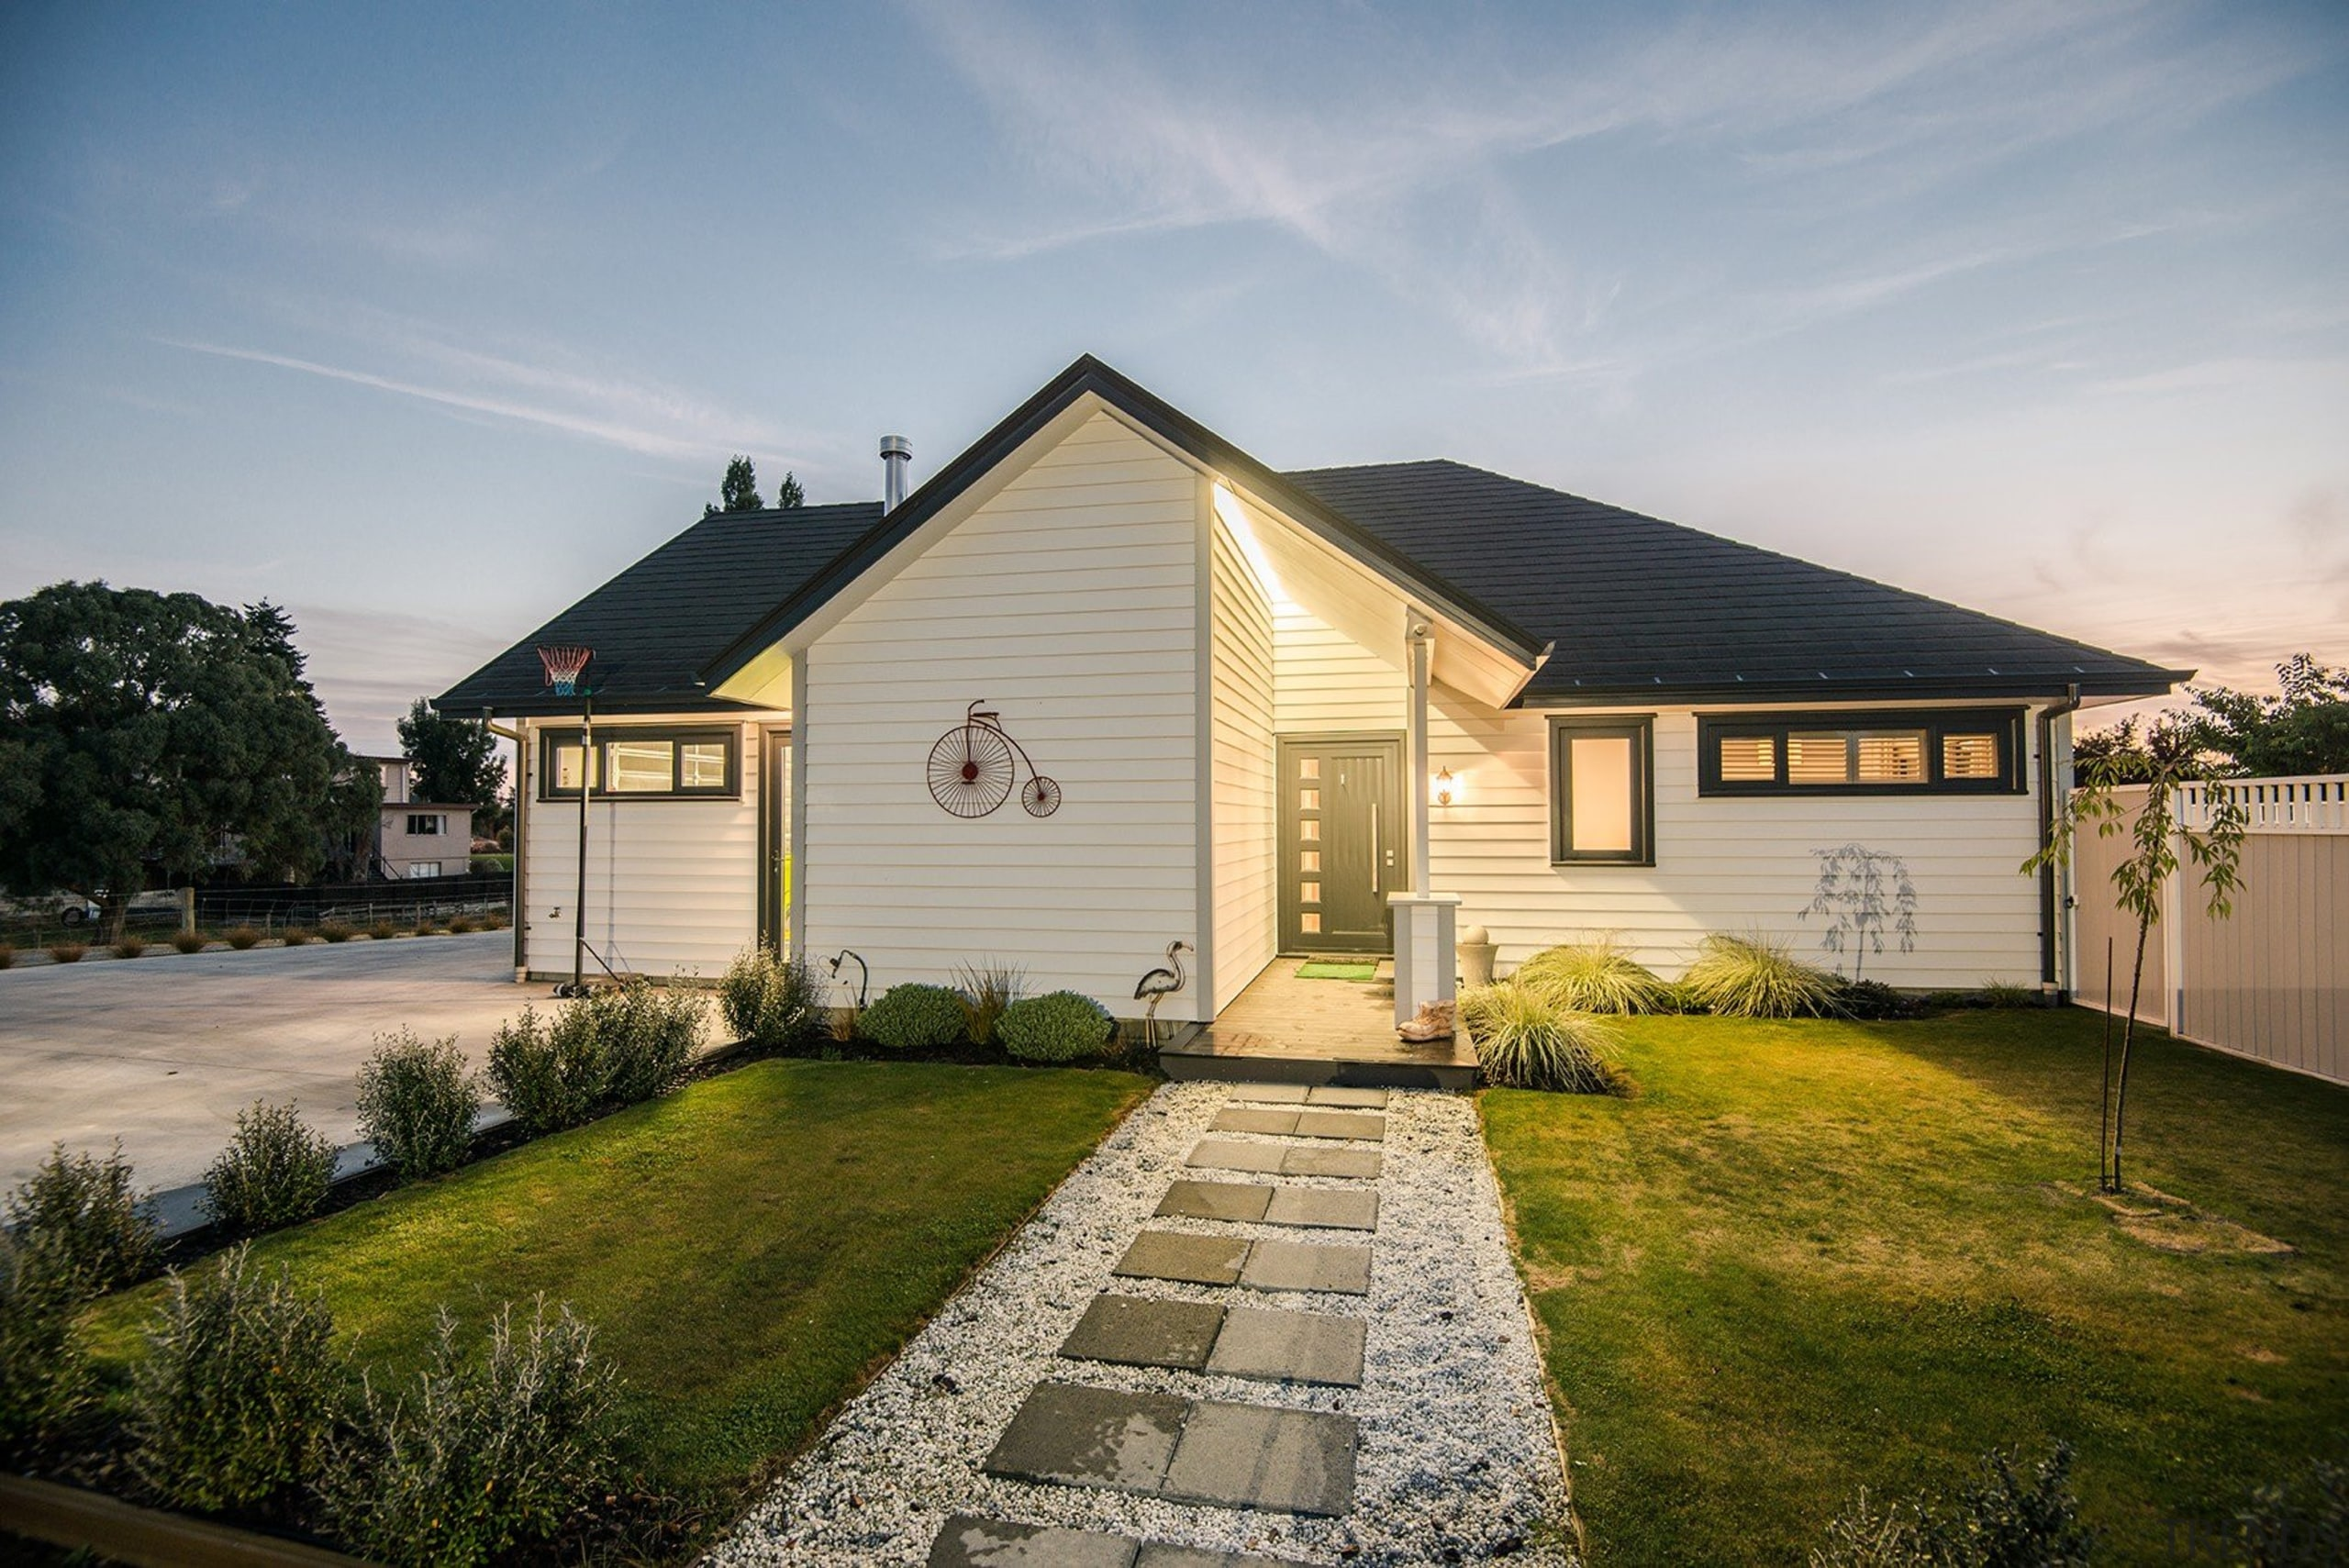 Back Entranceway To Lovely Weatherboard Home - Back building, cottage, estate, facade, farmhouse, home, house, landscape, property, real estate, residential area, siding, sky, suburb, yard, gray, brown